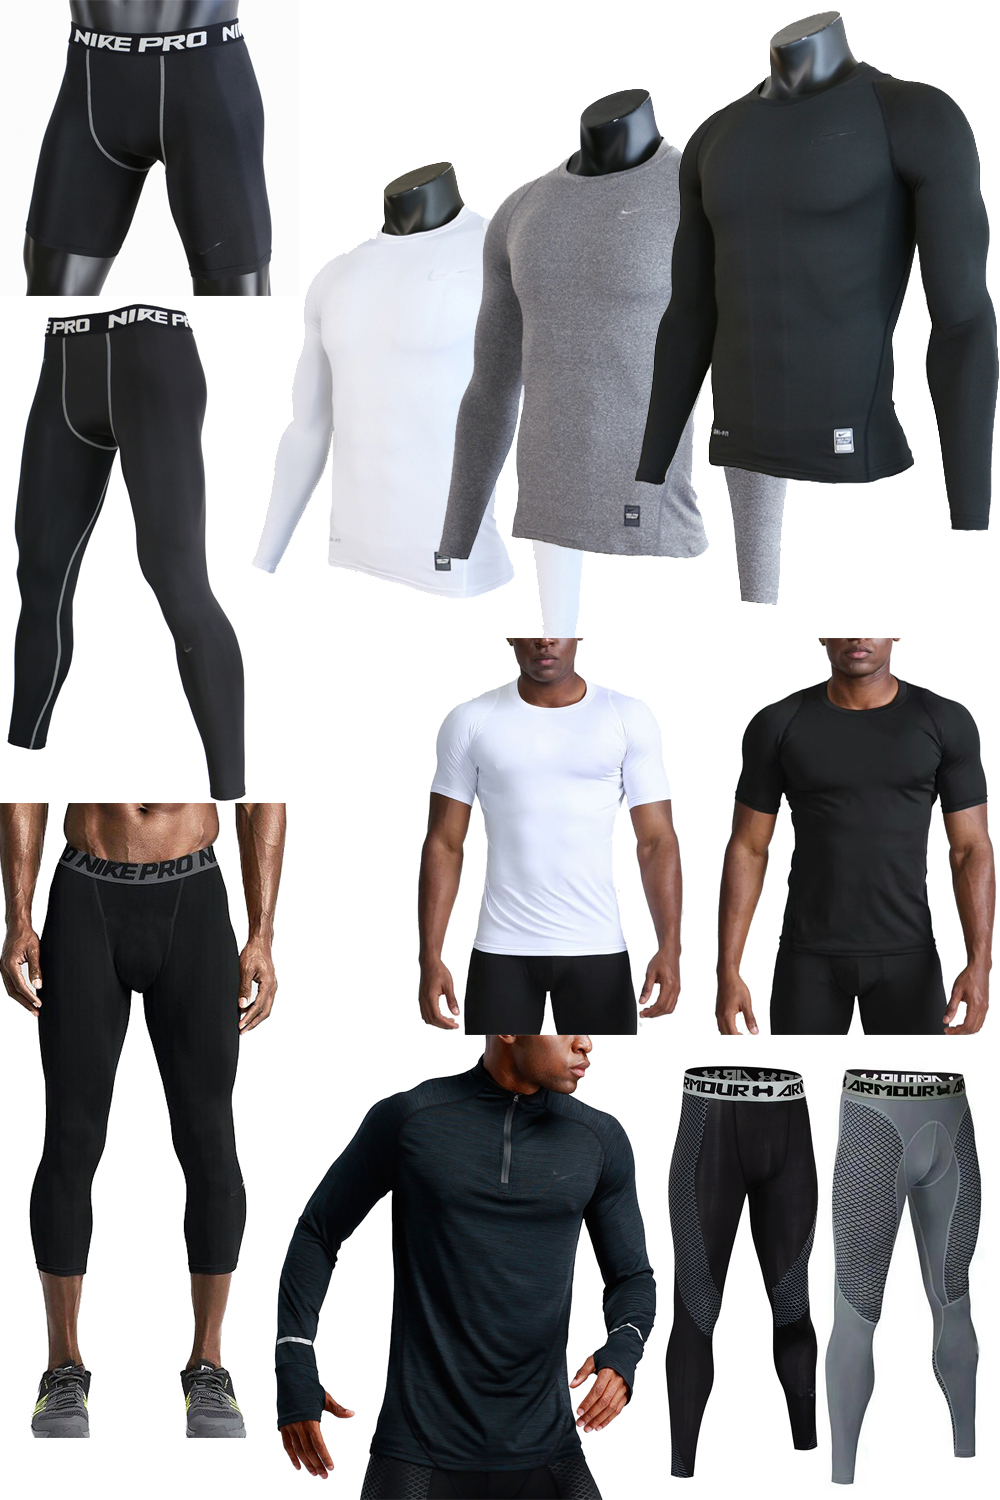 Pro tights tights quick drying breathable football tackle pants basketball training compression Pants Capris